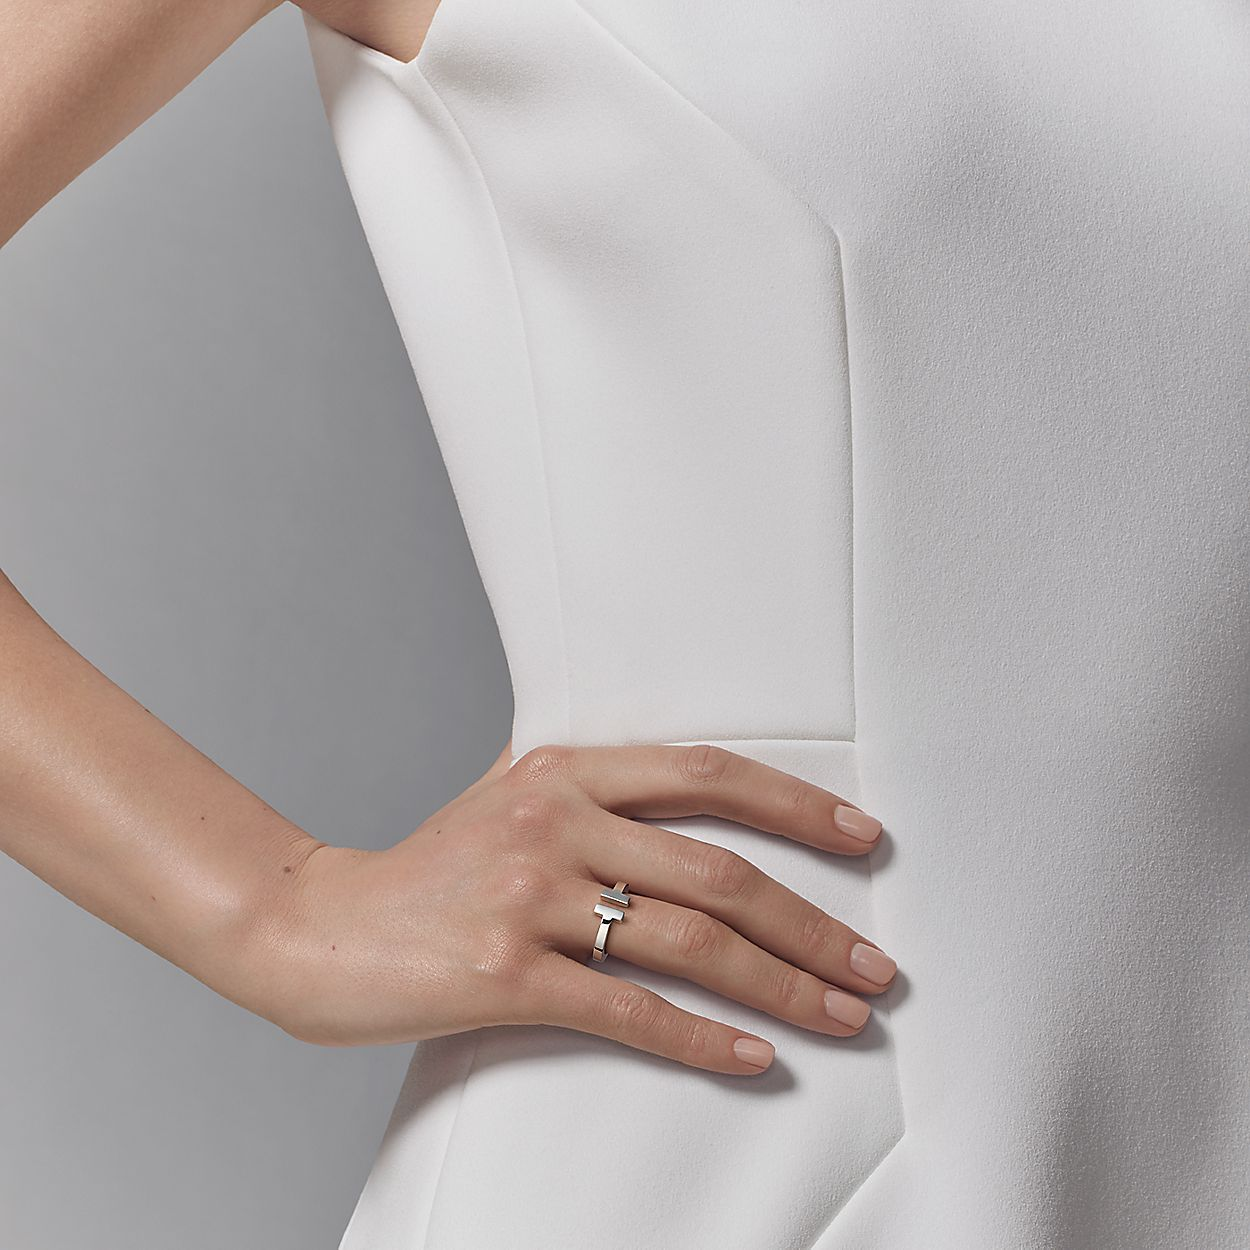 cbbe562af Tiffany T square ring in sterling silver. | Tiffany & Co.